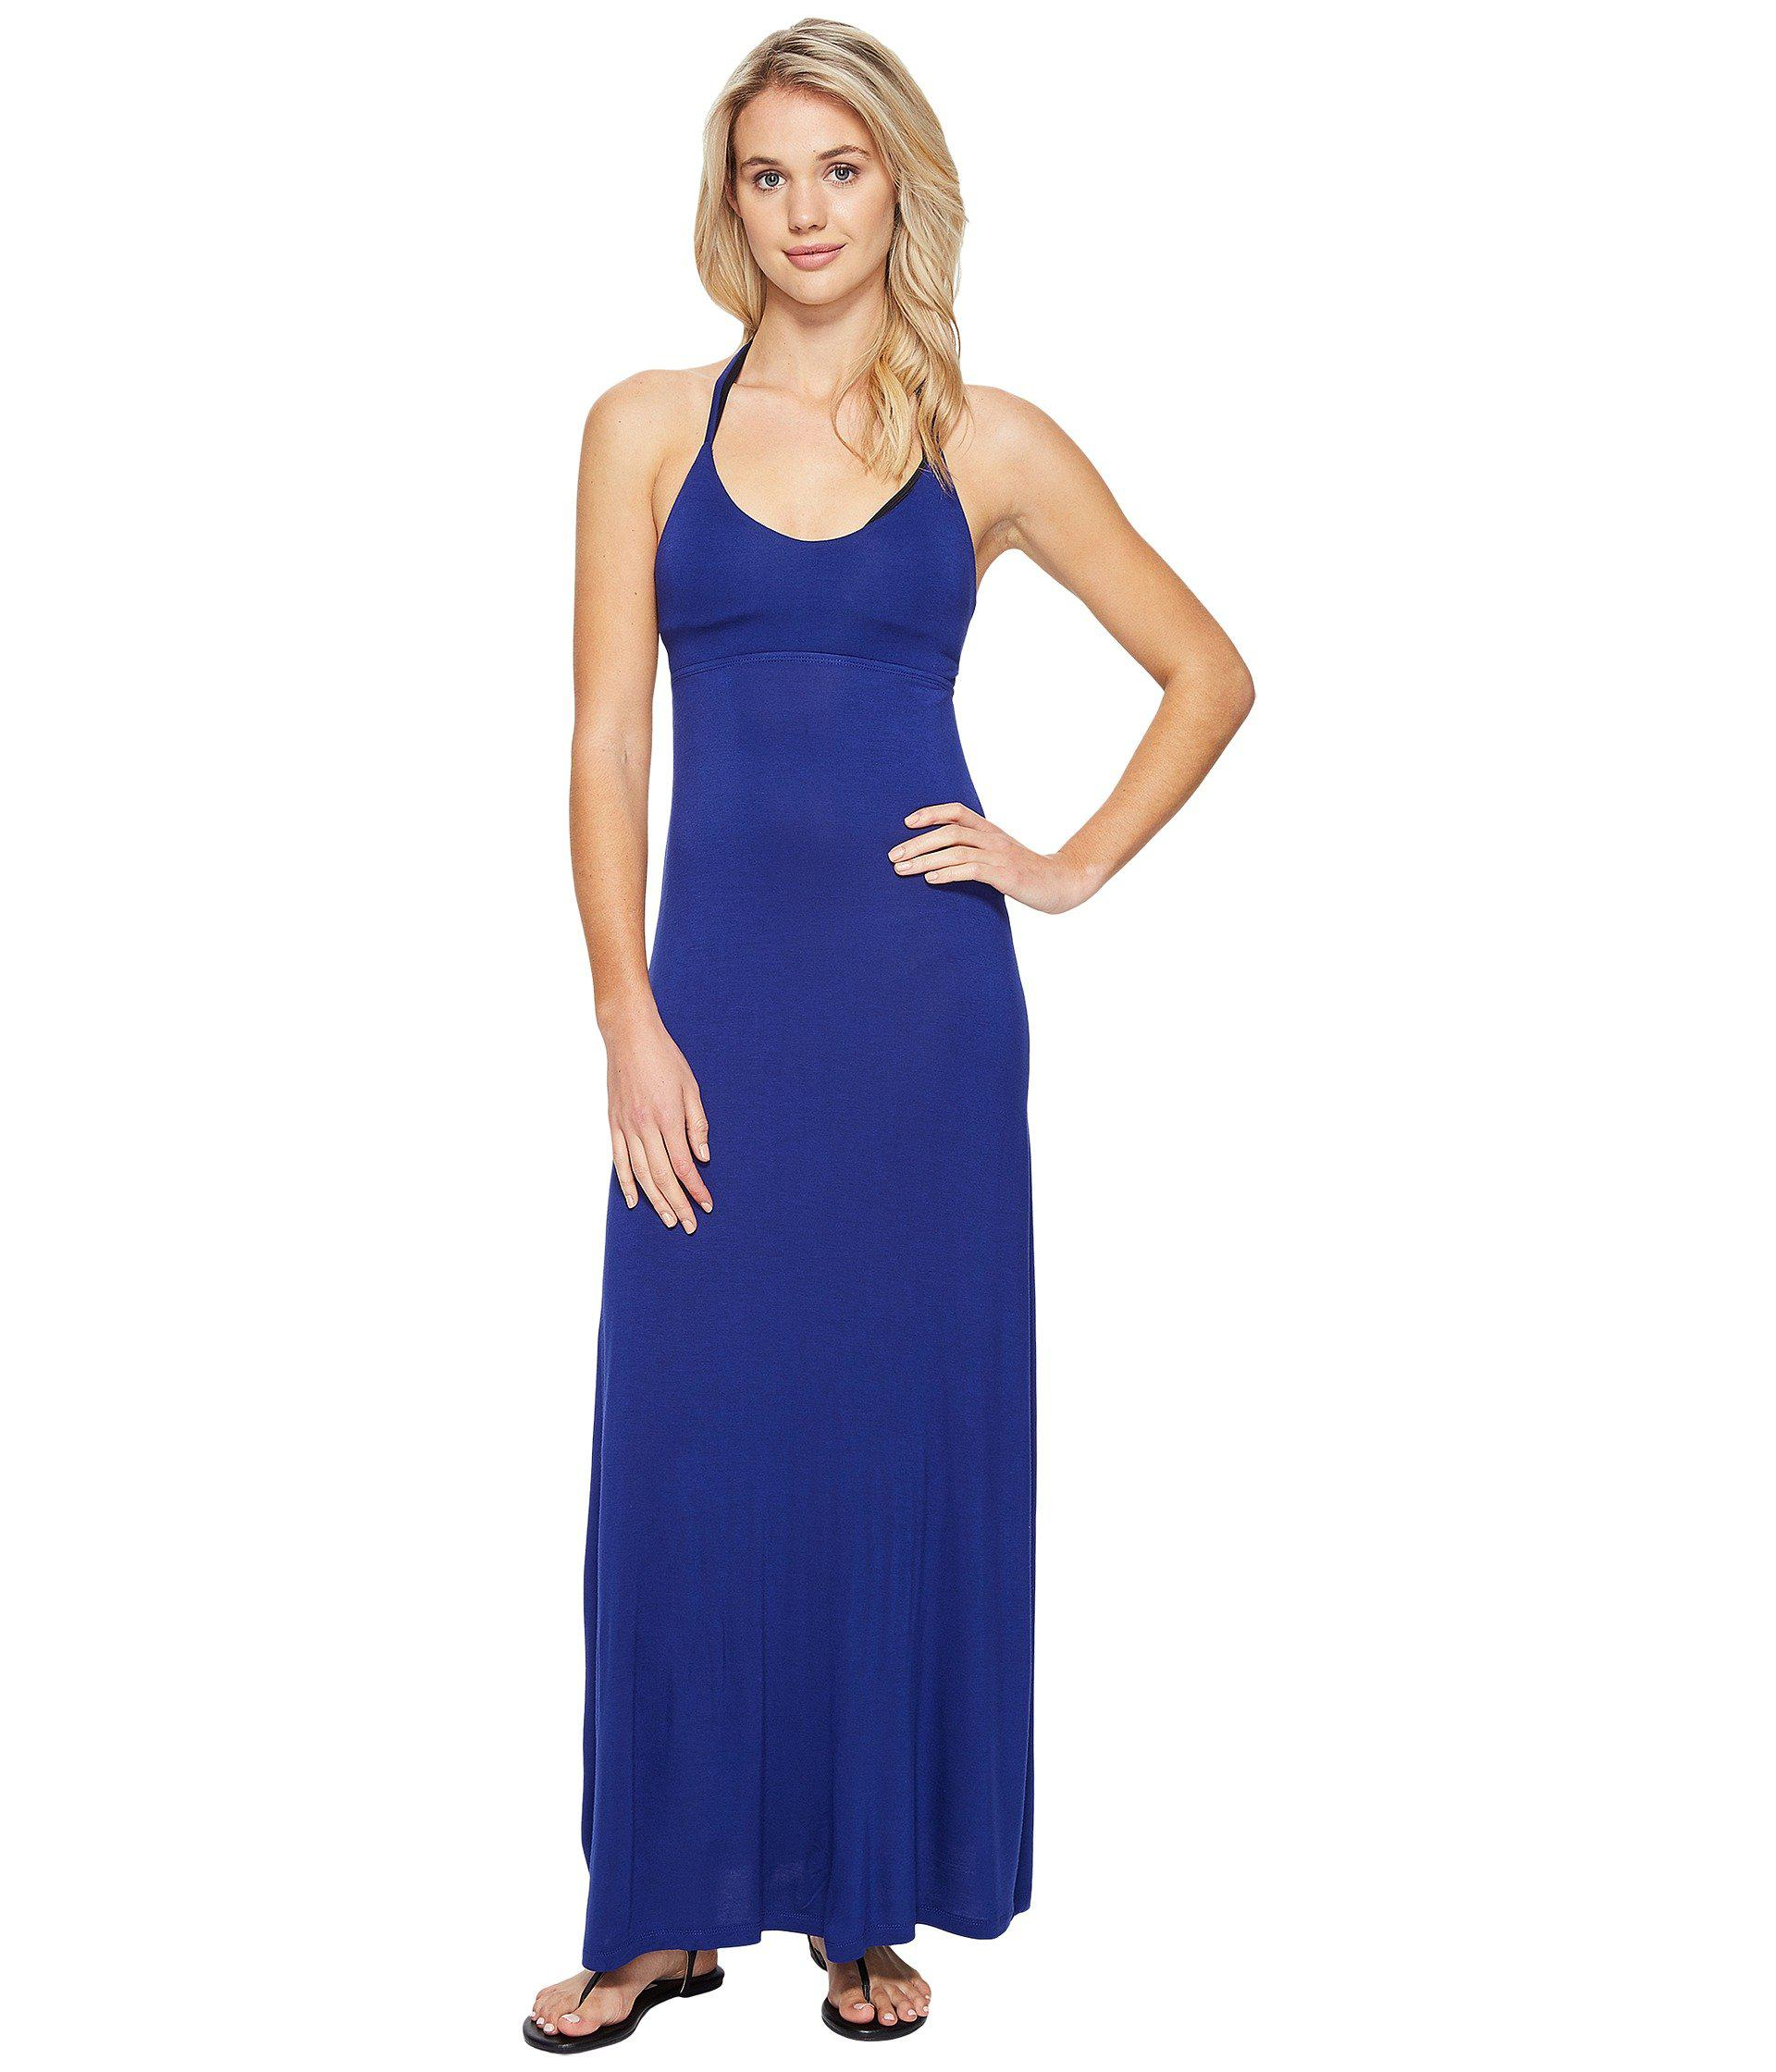 Lyst - Body glove Nerida Dress Cover-up in Blue - Save 26%